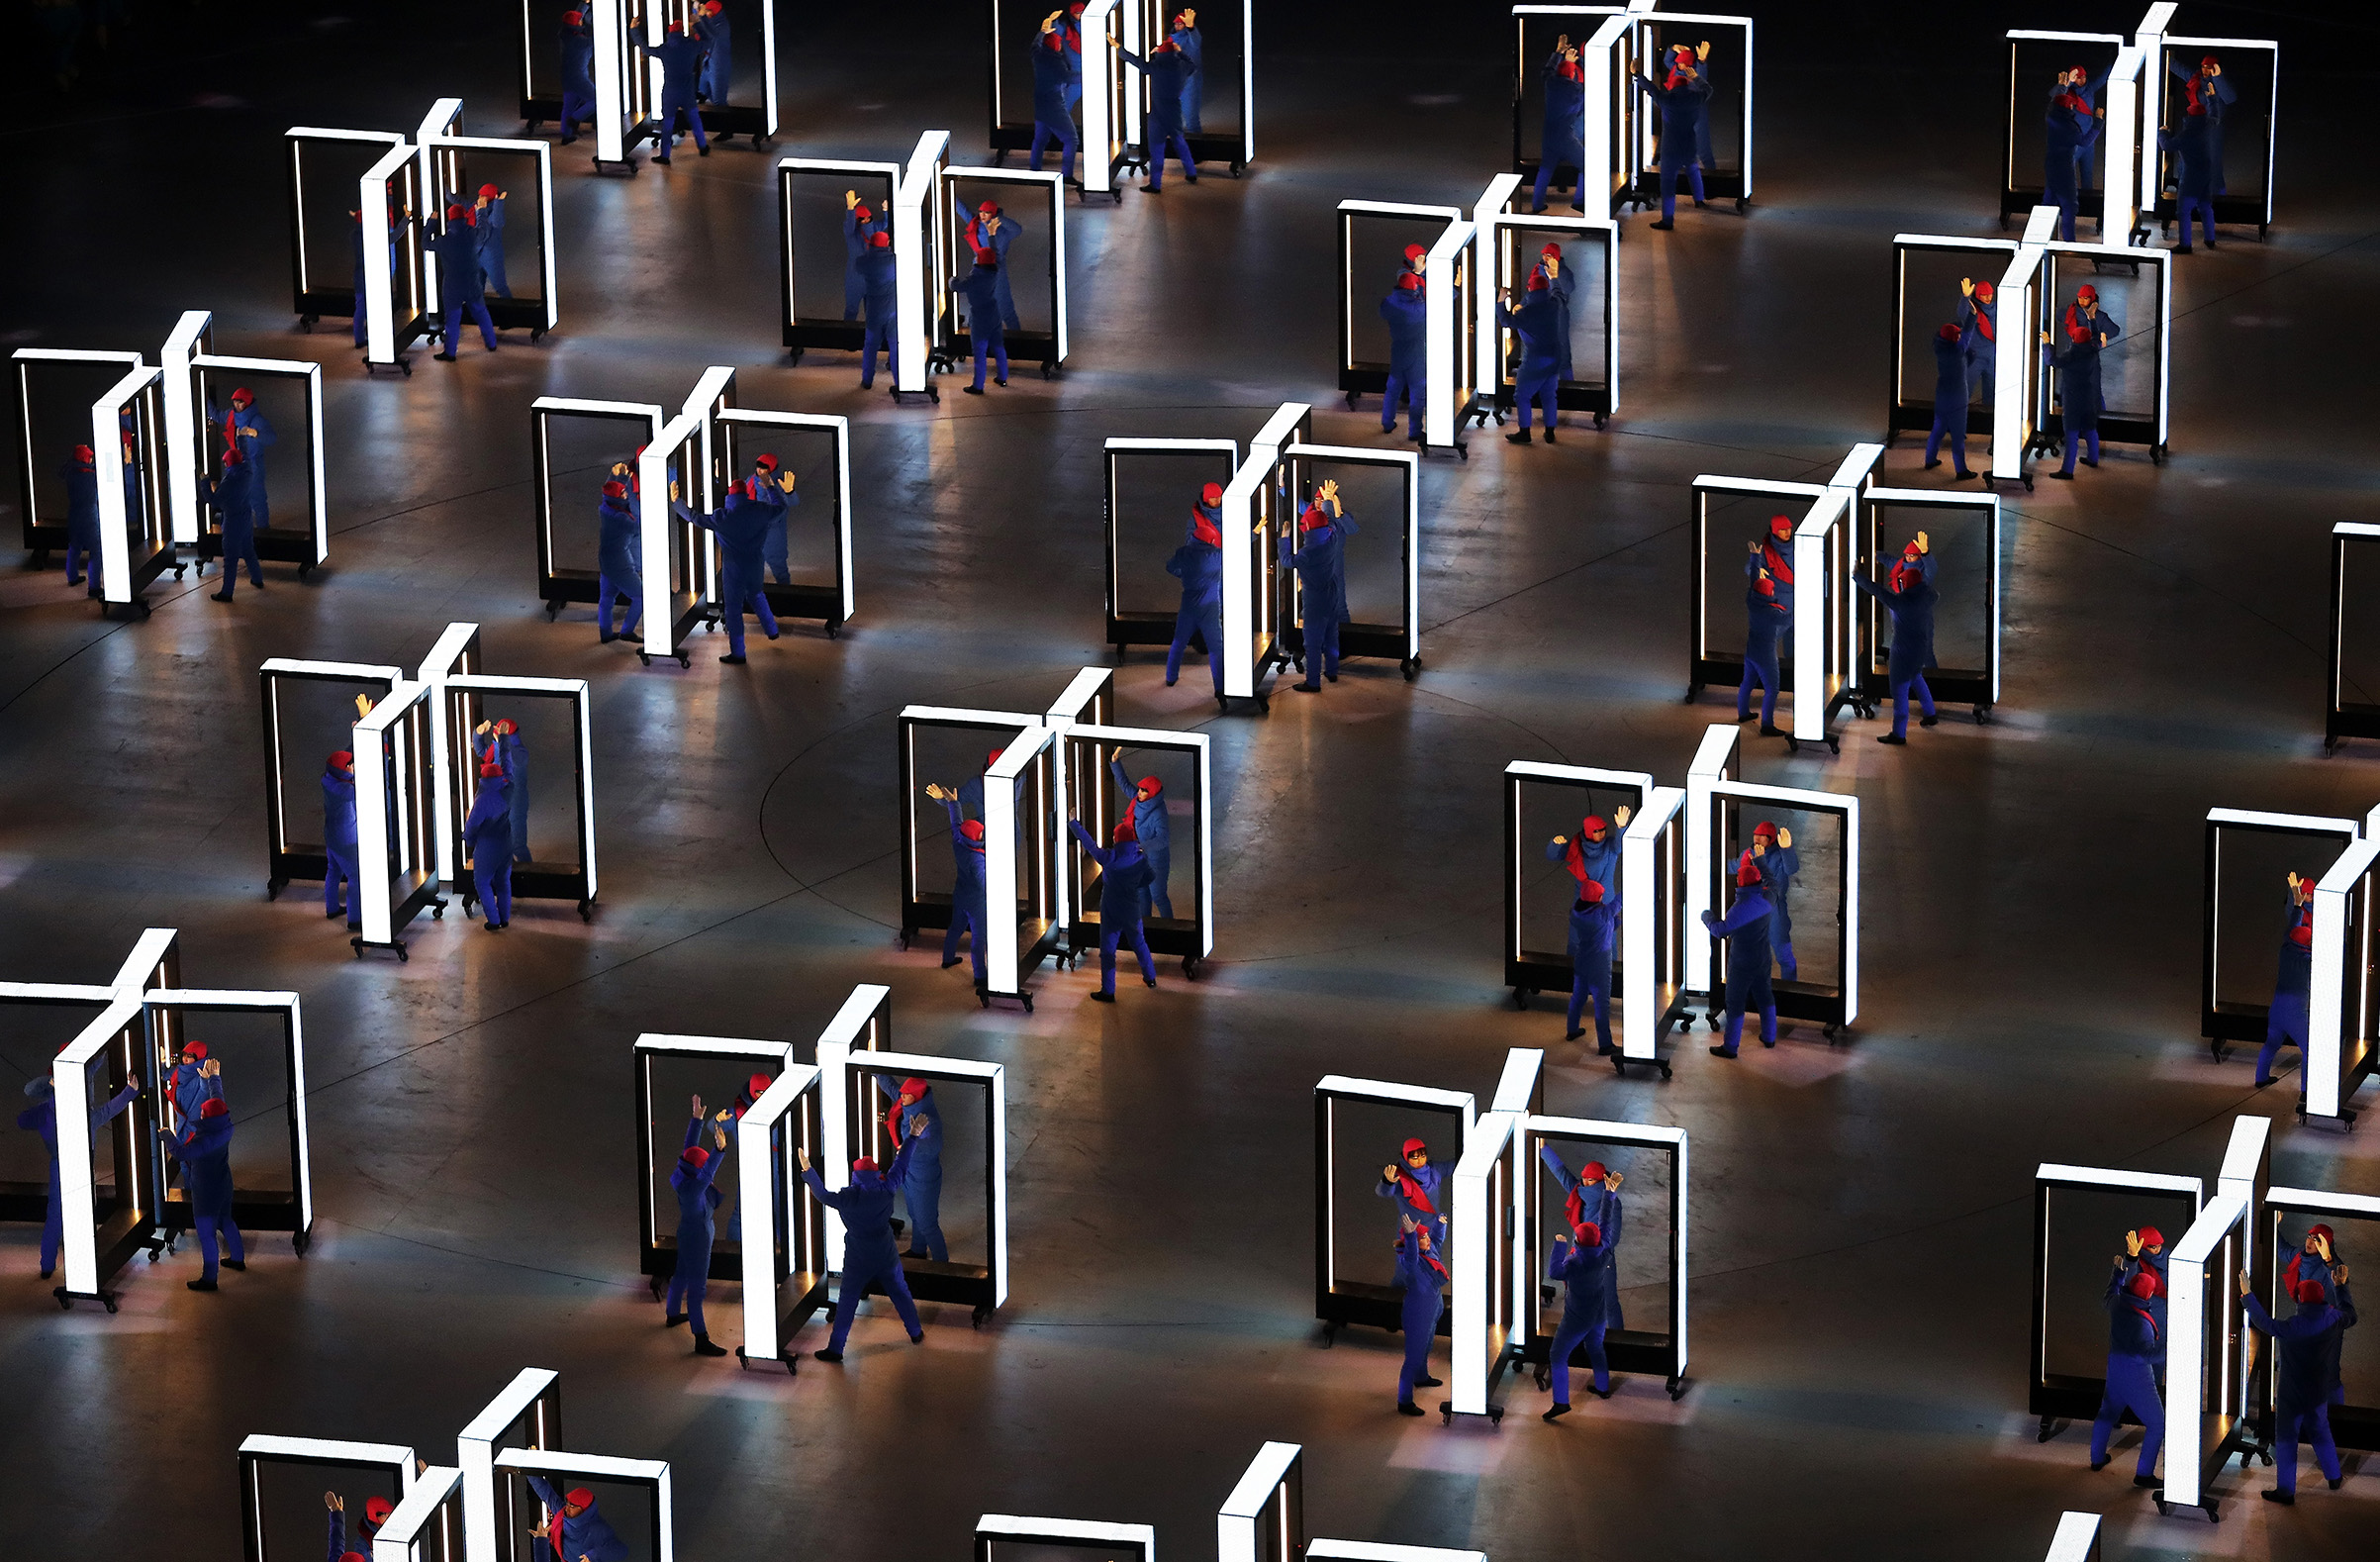 Performers entertain during the Opening Ceremony of the PyeongChang 2018 Winter Olympic Games.